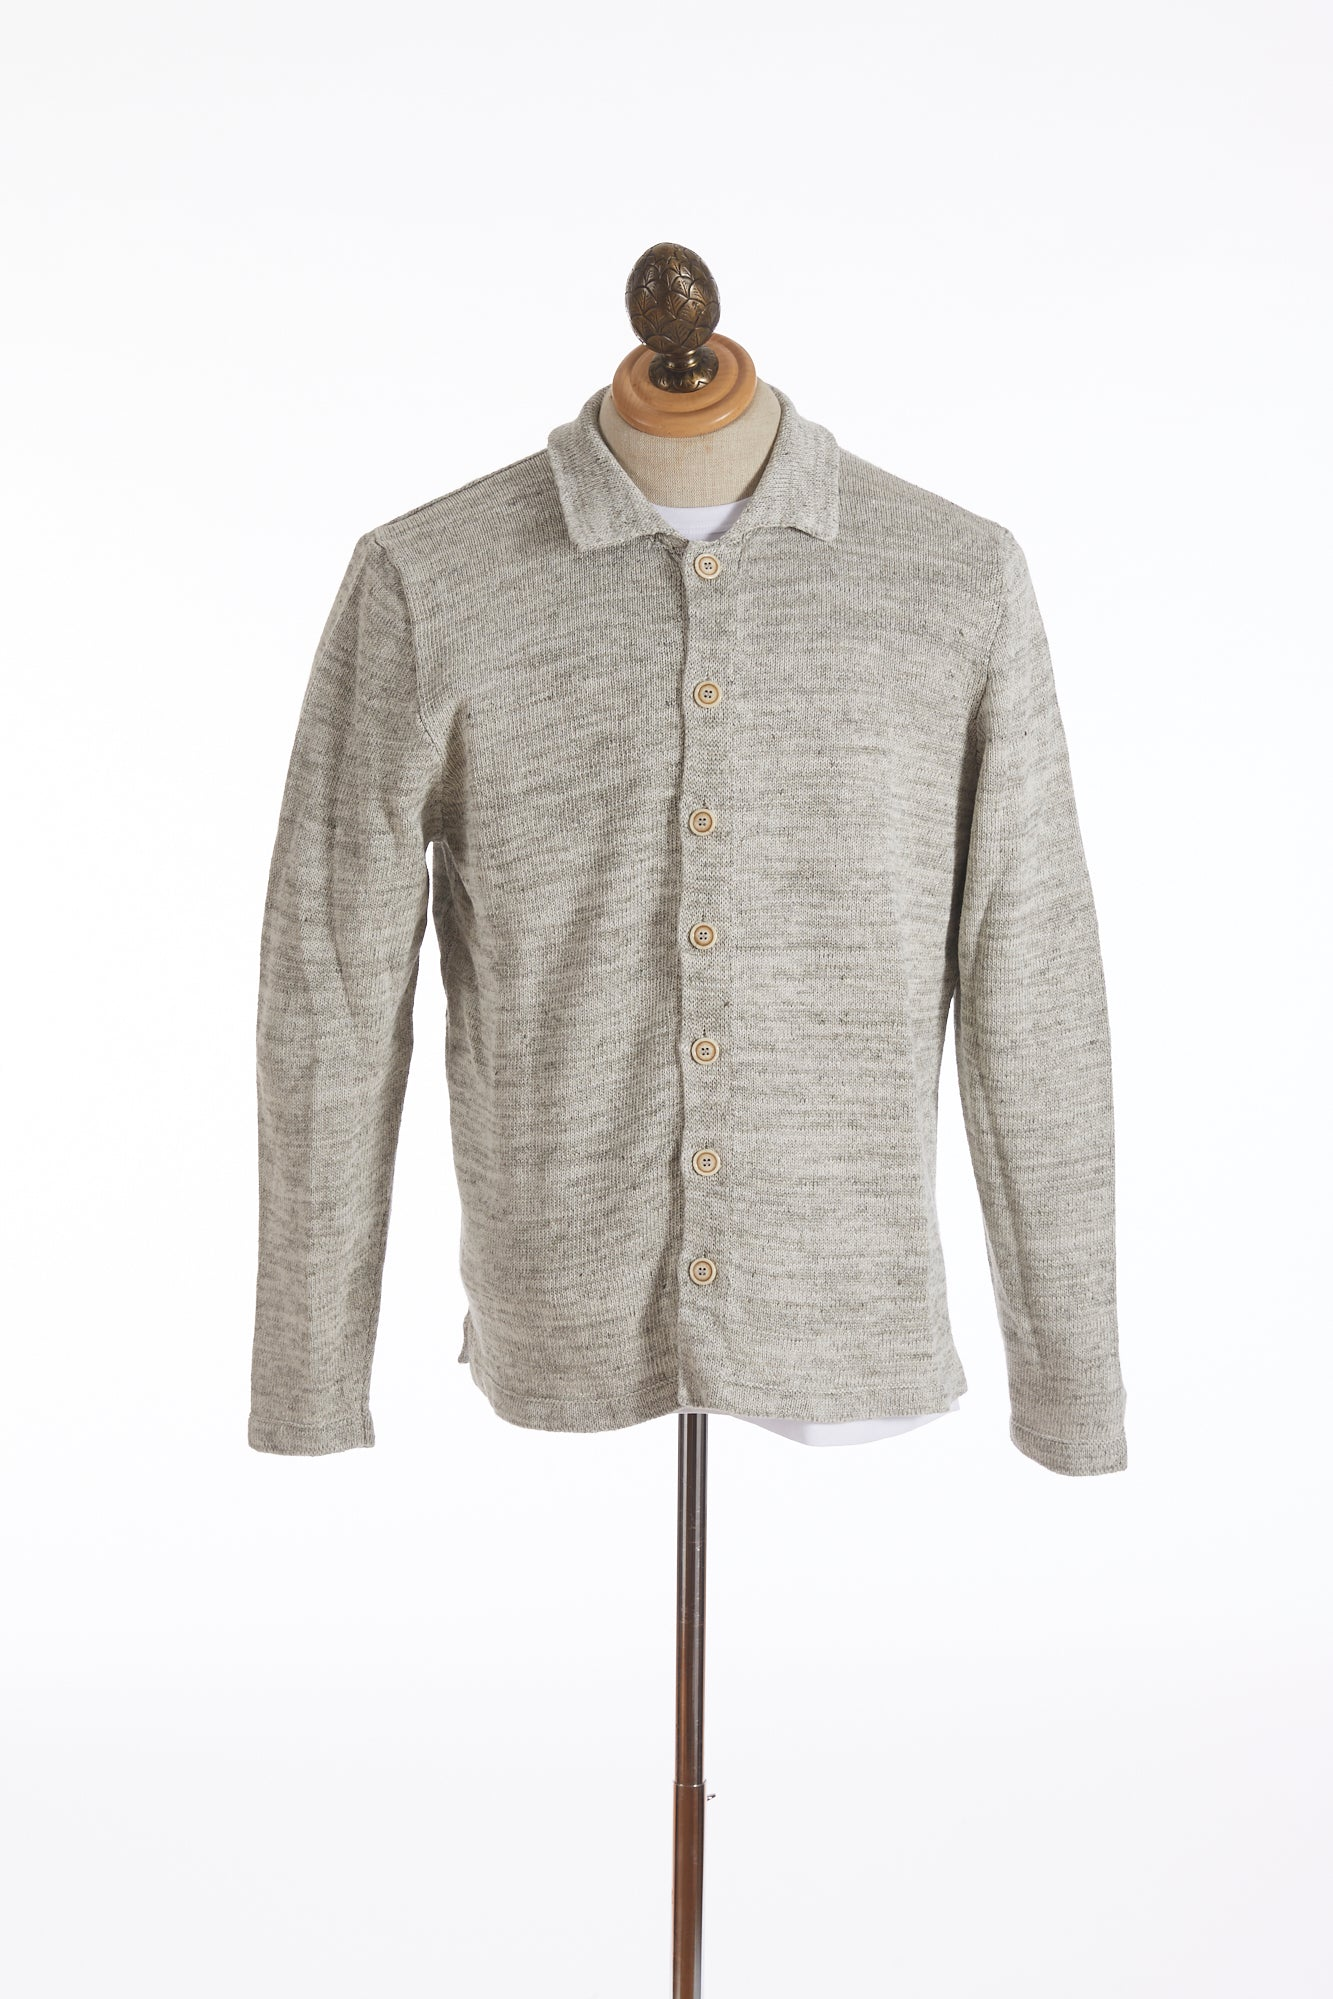 Inis Meáin Off-White Linen Shirt Jacket - Sweaters - Inis Meáin - LALONDE's